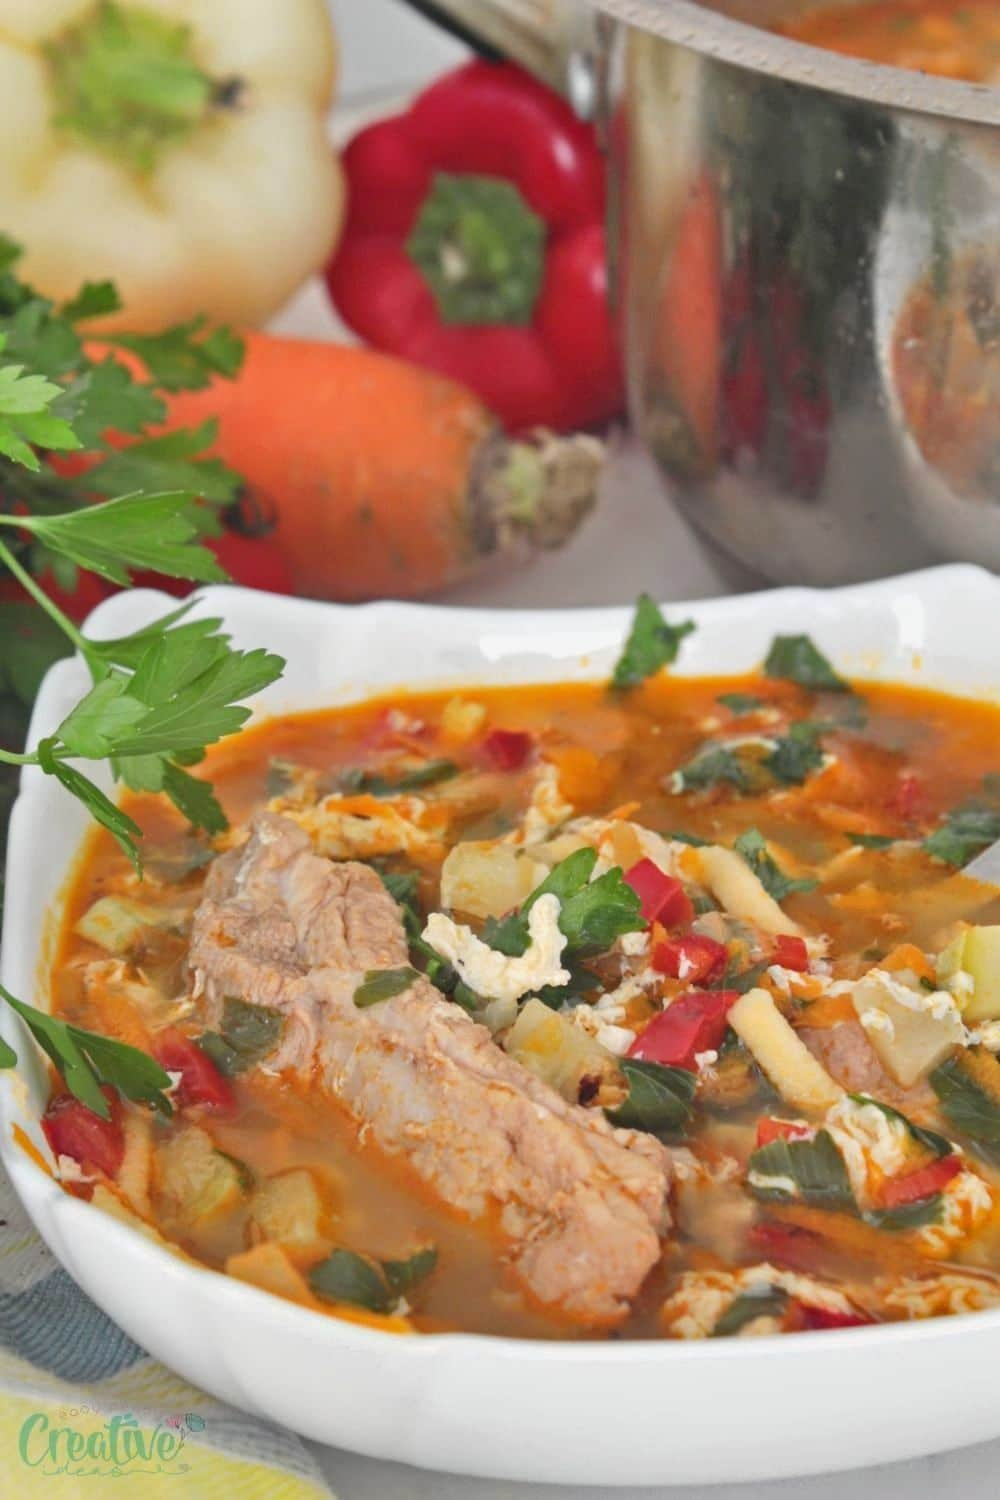 Image of pork vegetable soup made with spare ribs, fresh vegetables and noodles, served in a white soup bowl